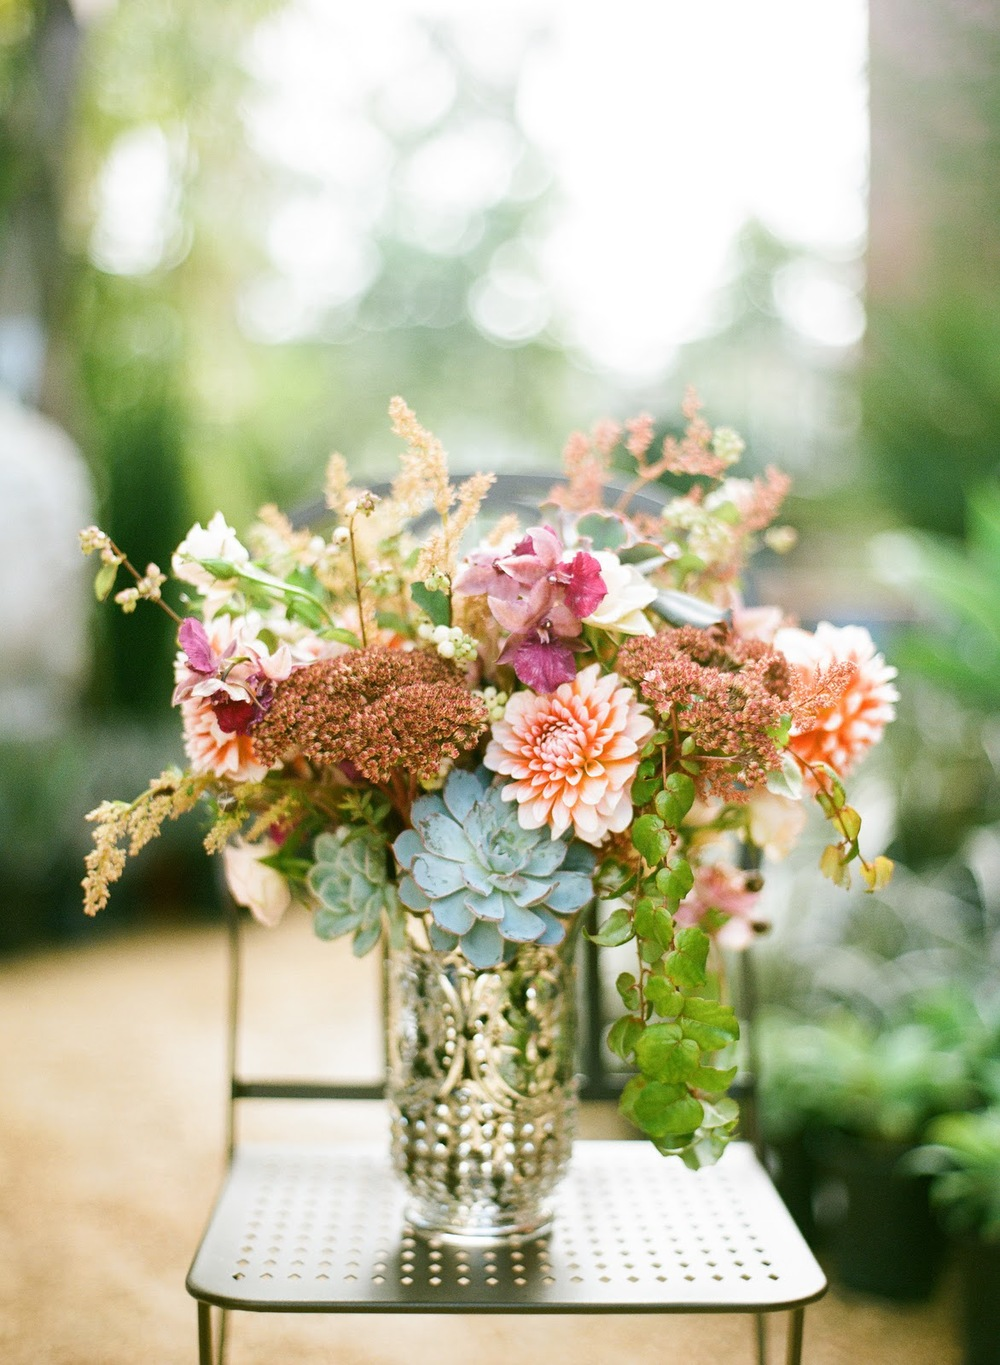 sylvie-gil-film-photography-wedding-cutting-garden-flora-grubb-flowers